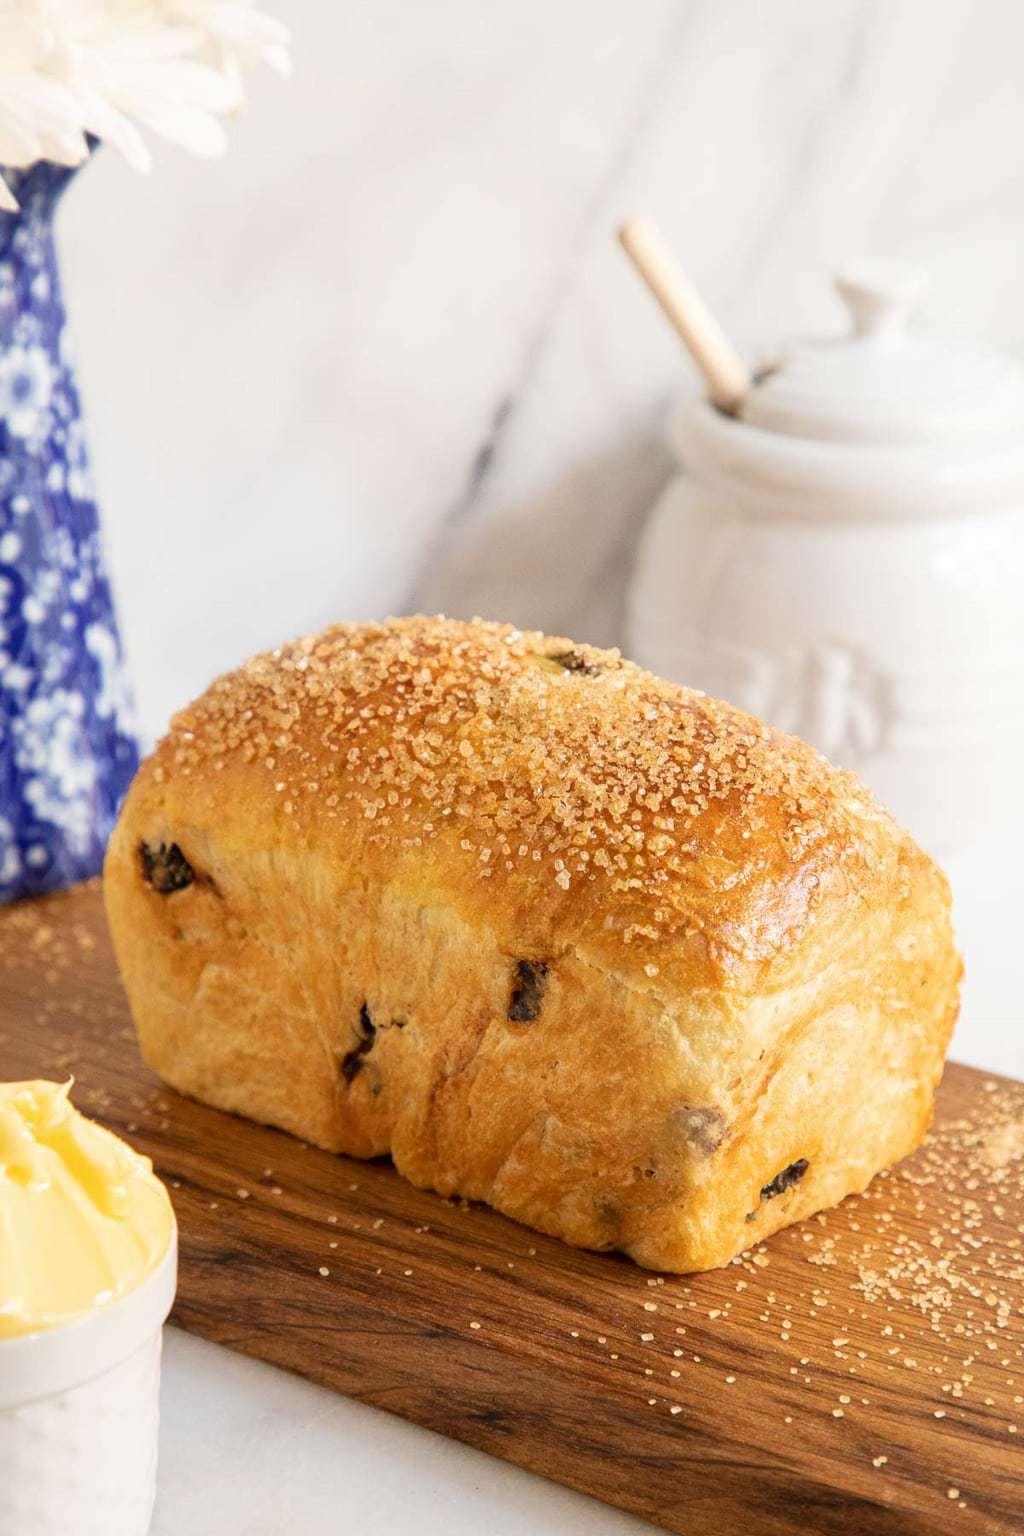 Vertical picture of Cinnamon Raisin Brioche bread on a wooden cutting board